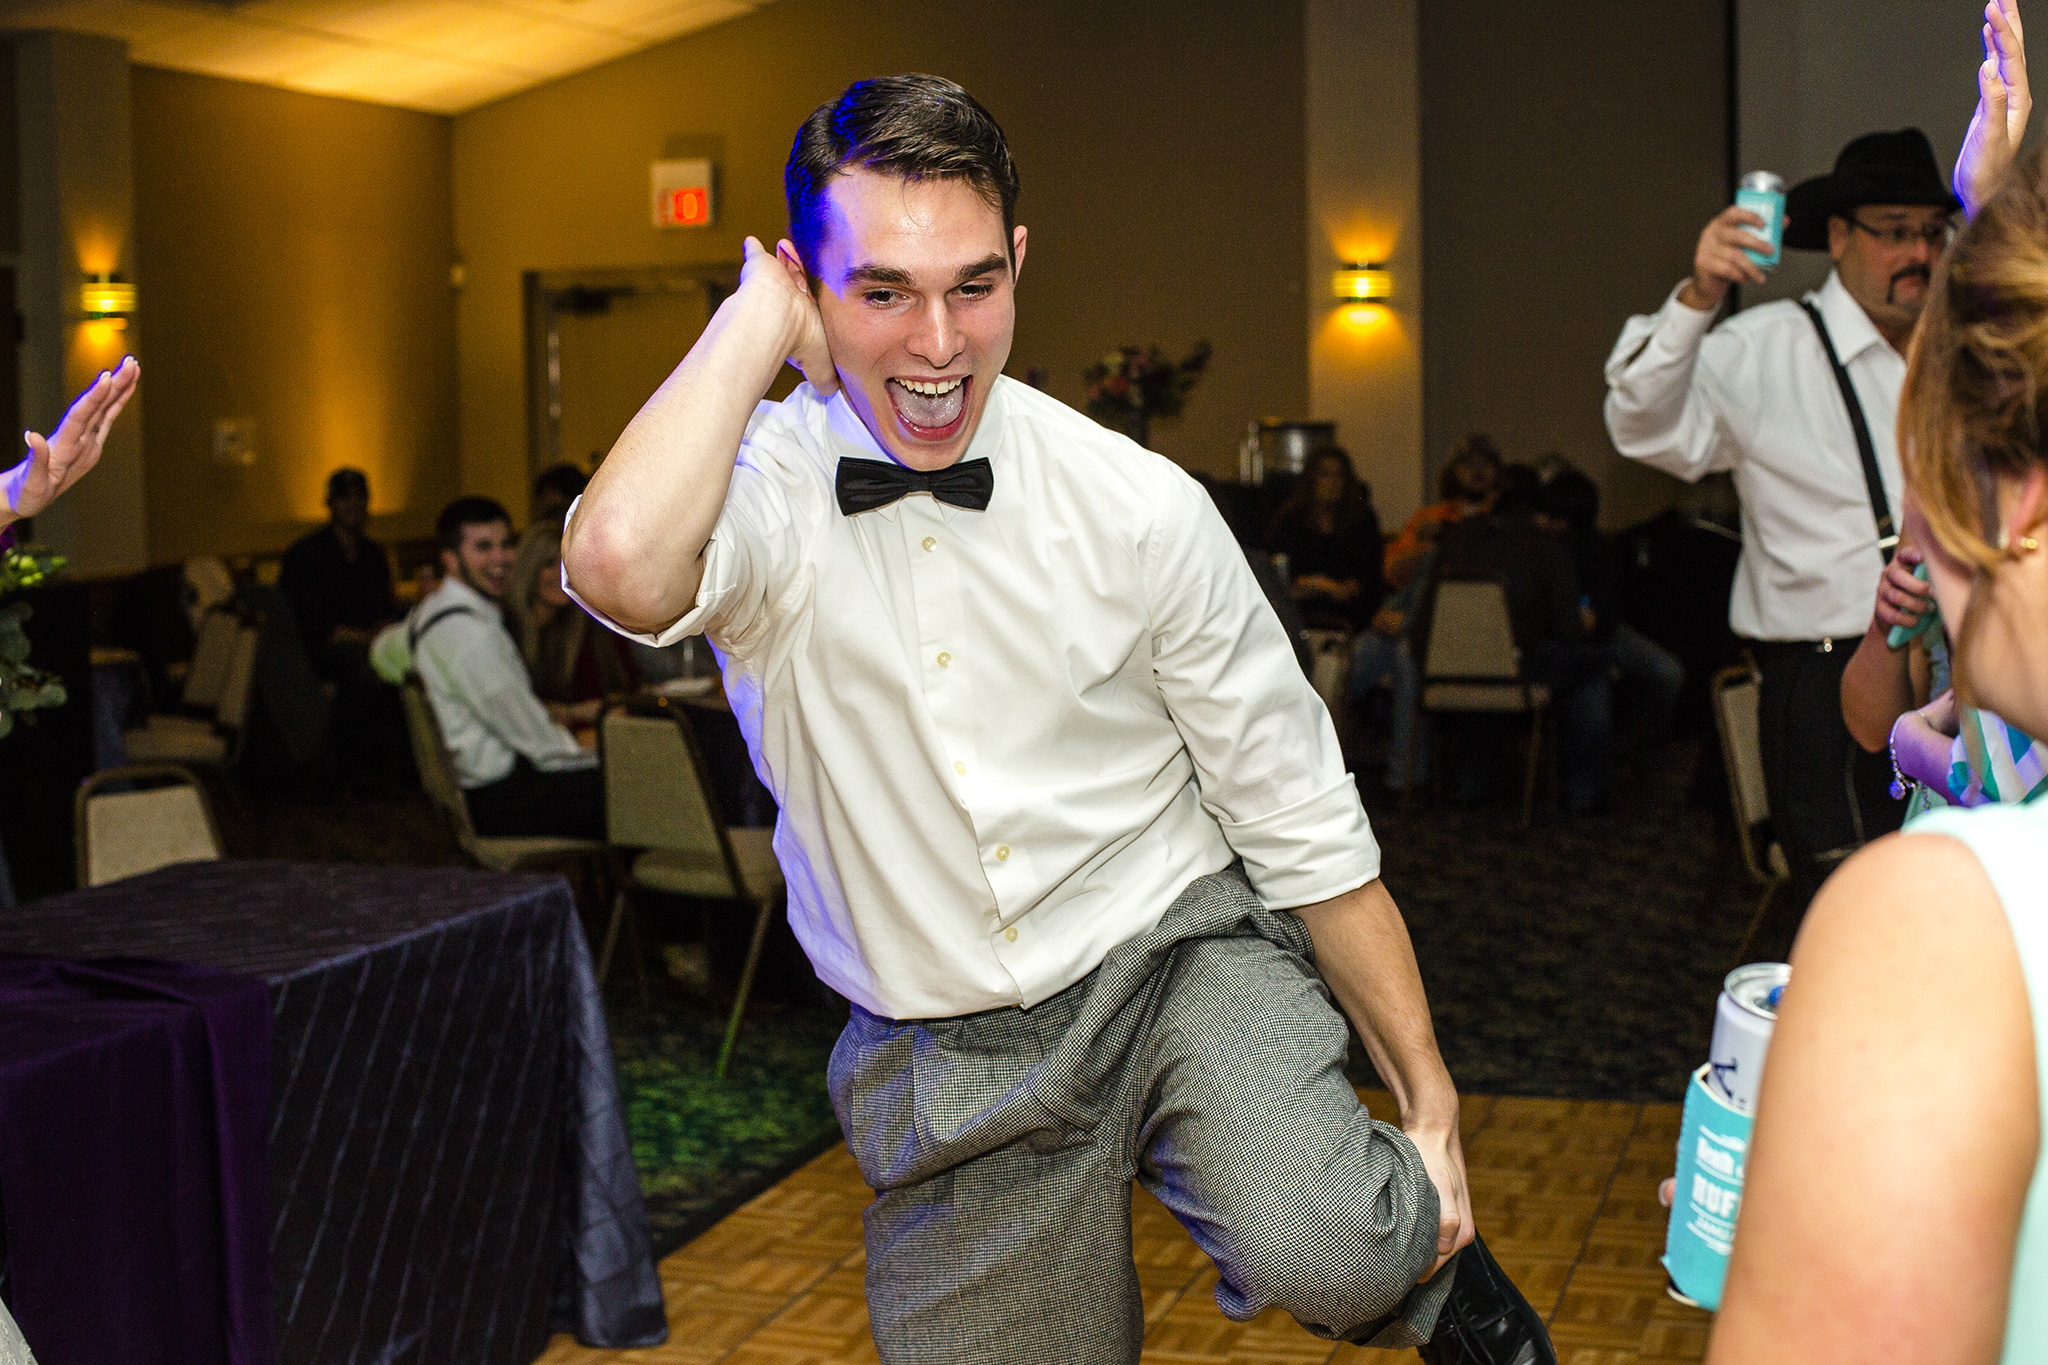 dancing, bow tie, wedding reception